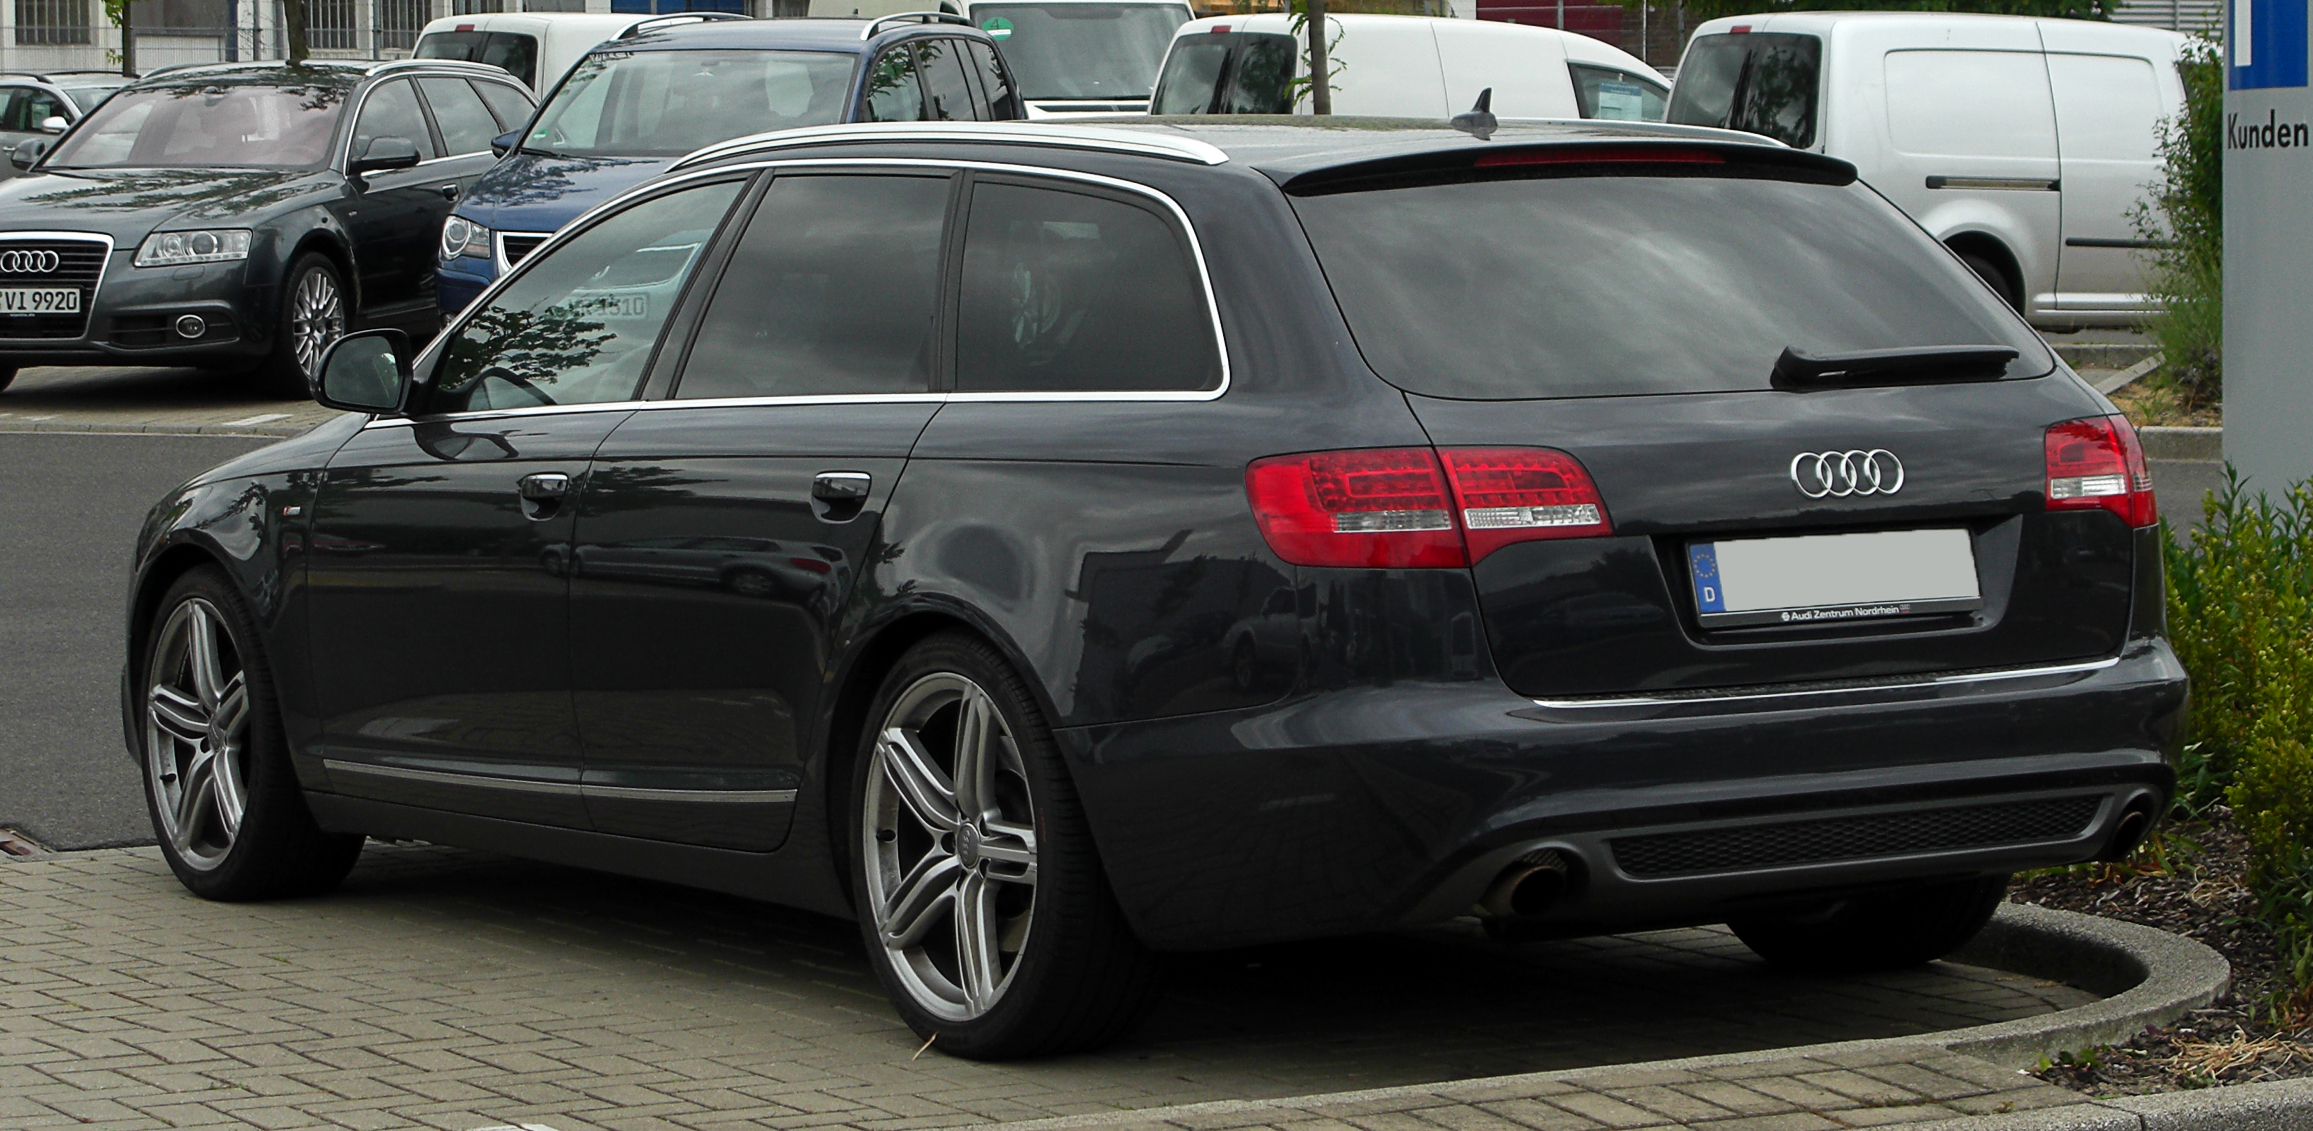 file audi a6 avant s line c6 facelift heckansicht 28 mai 2011 d wikimedia. Black Bedroom Furniture Sets. Home Design Ideas